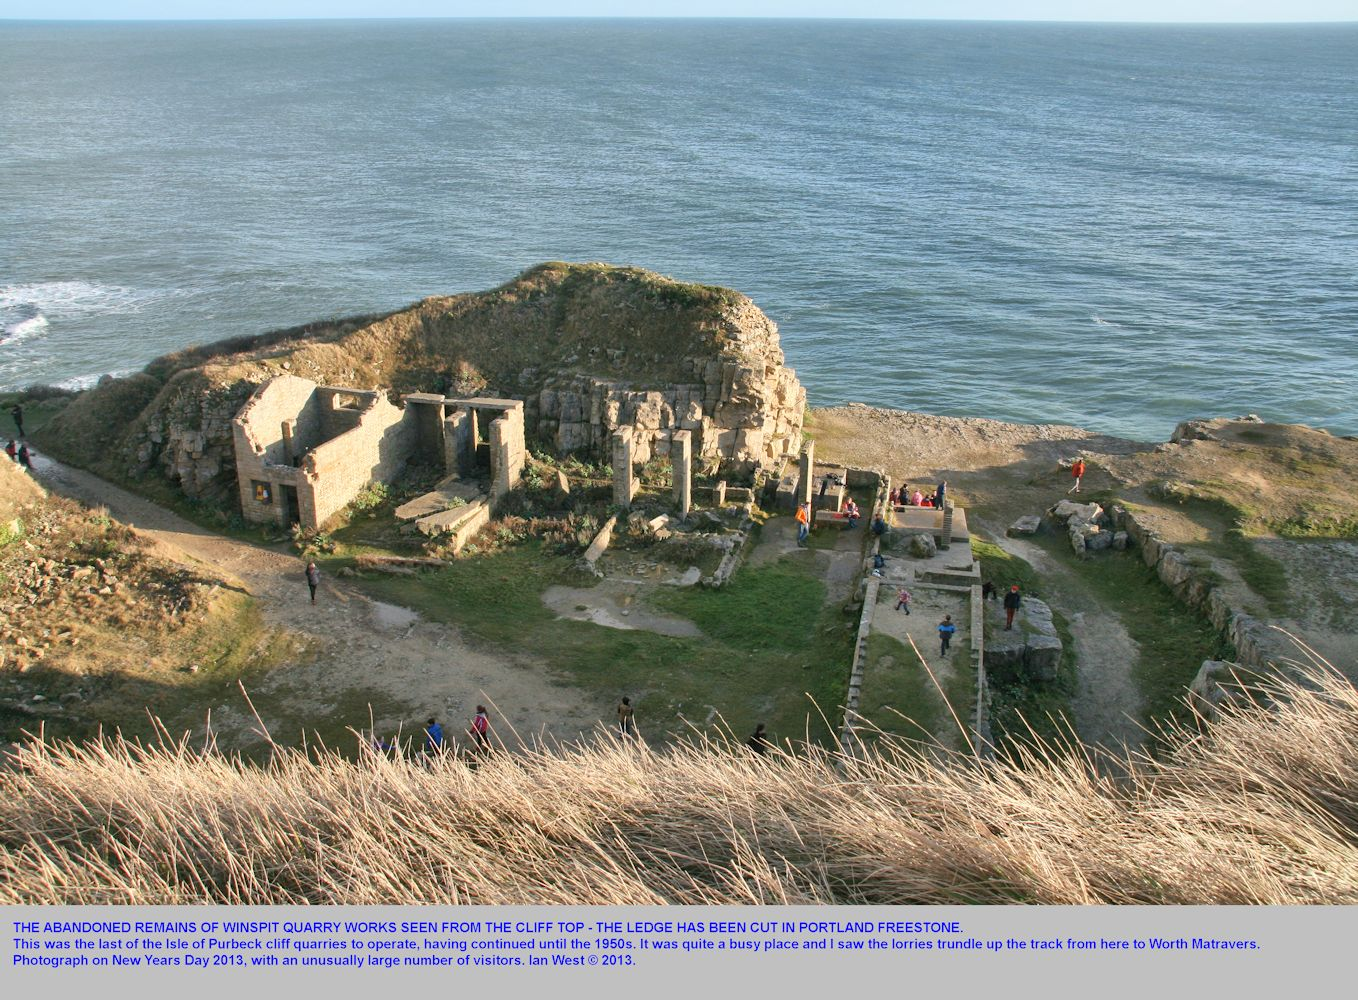 Looking down from the cliff top to the abandoned Winspit Quarry, Isle of Purbeck, Dorset, on the west side, 1st January 2013